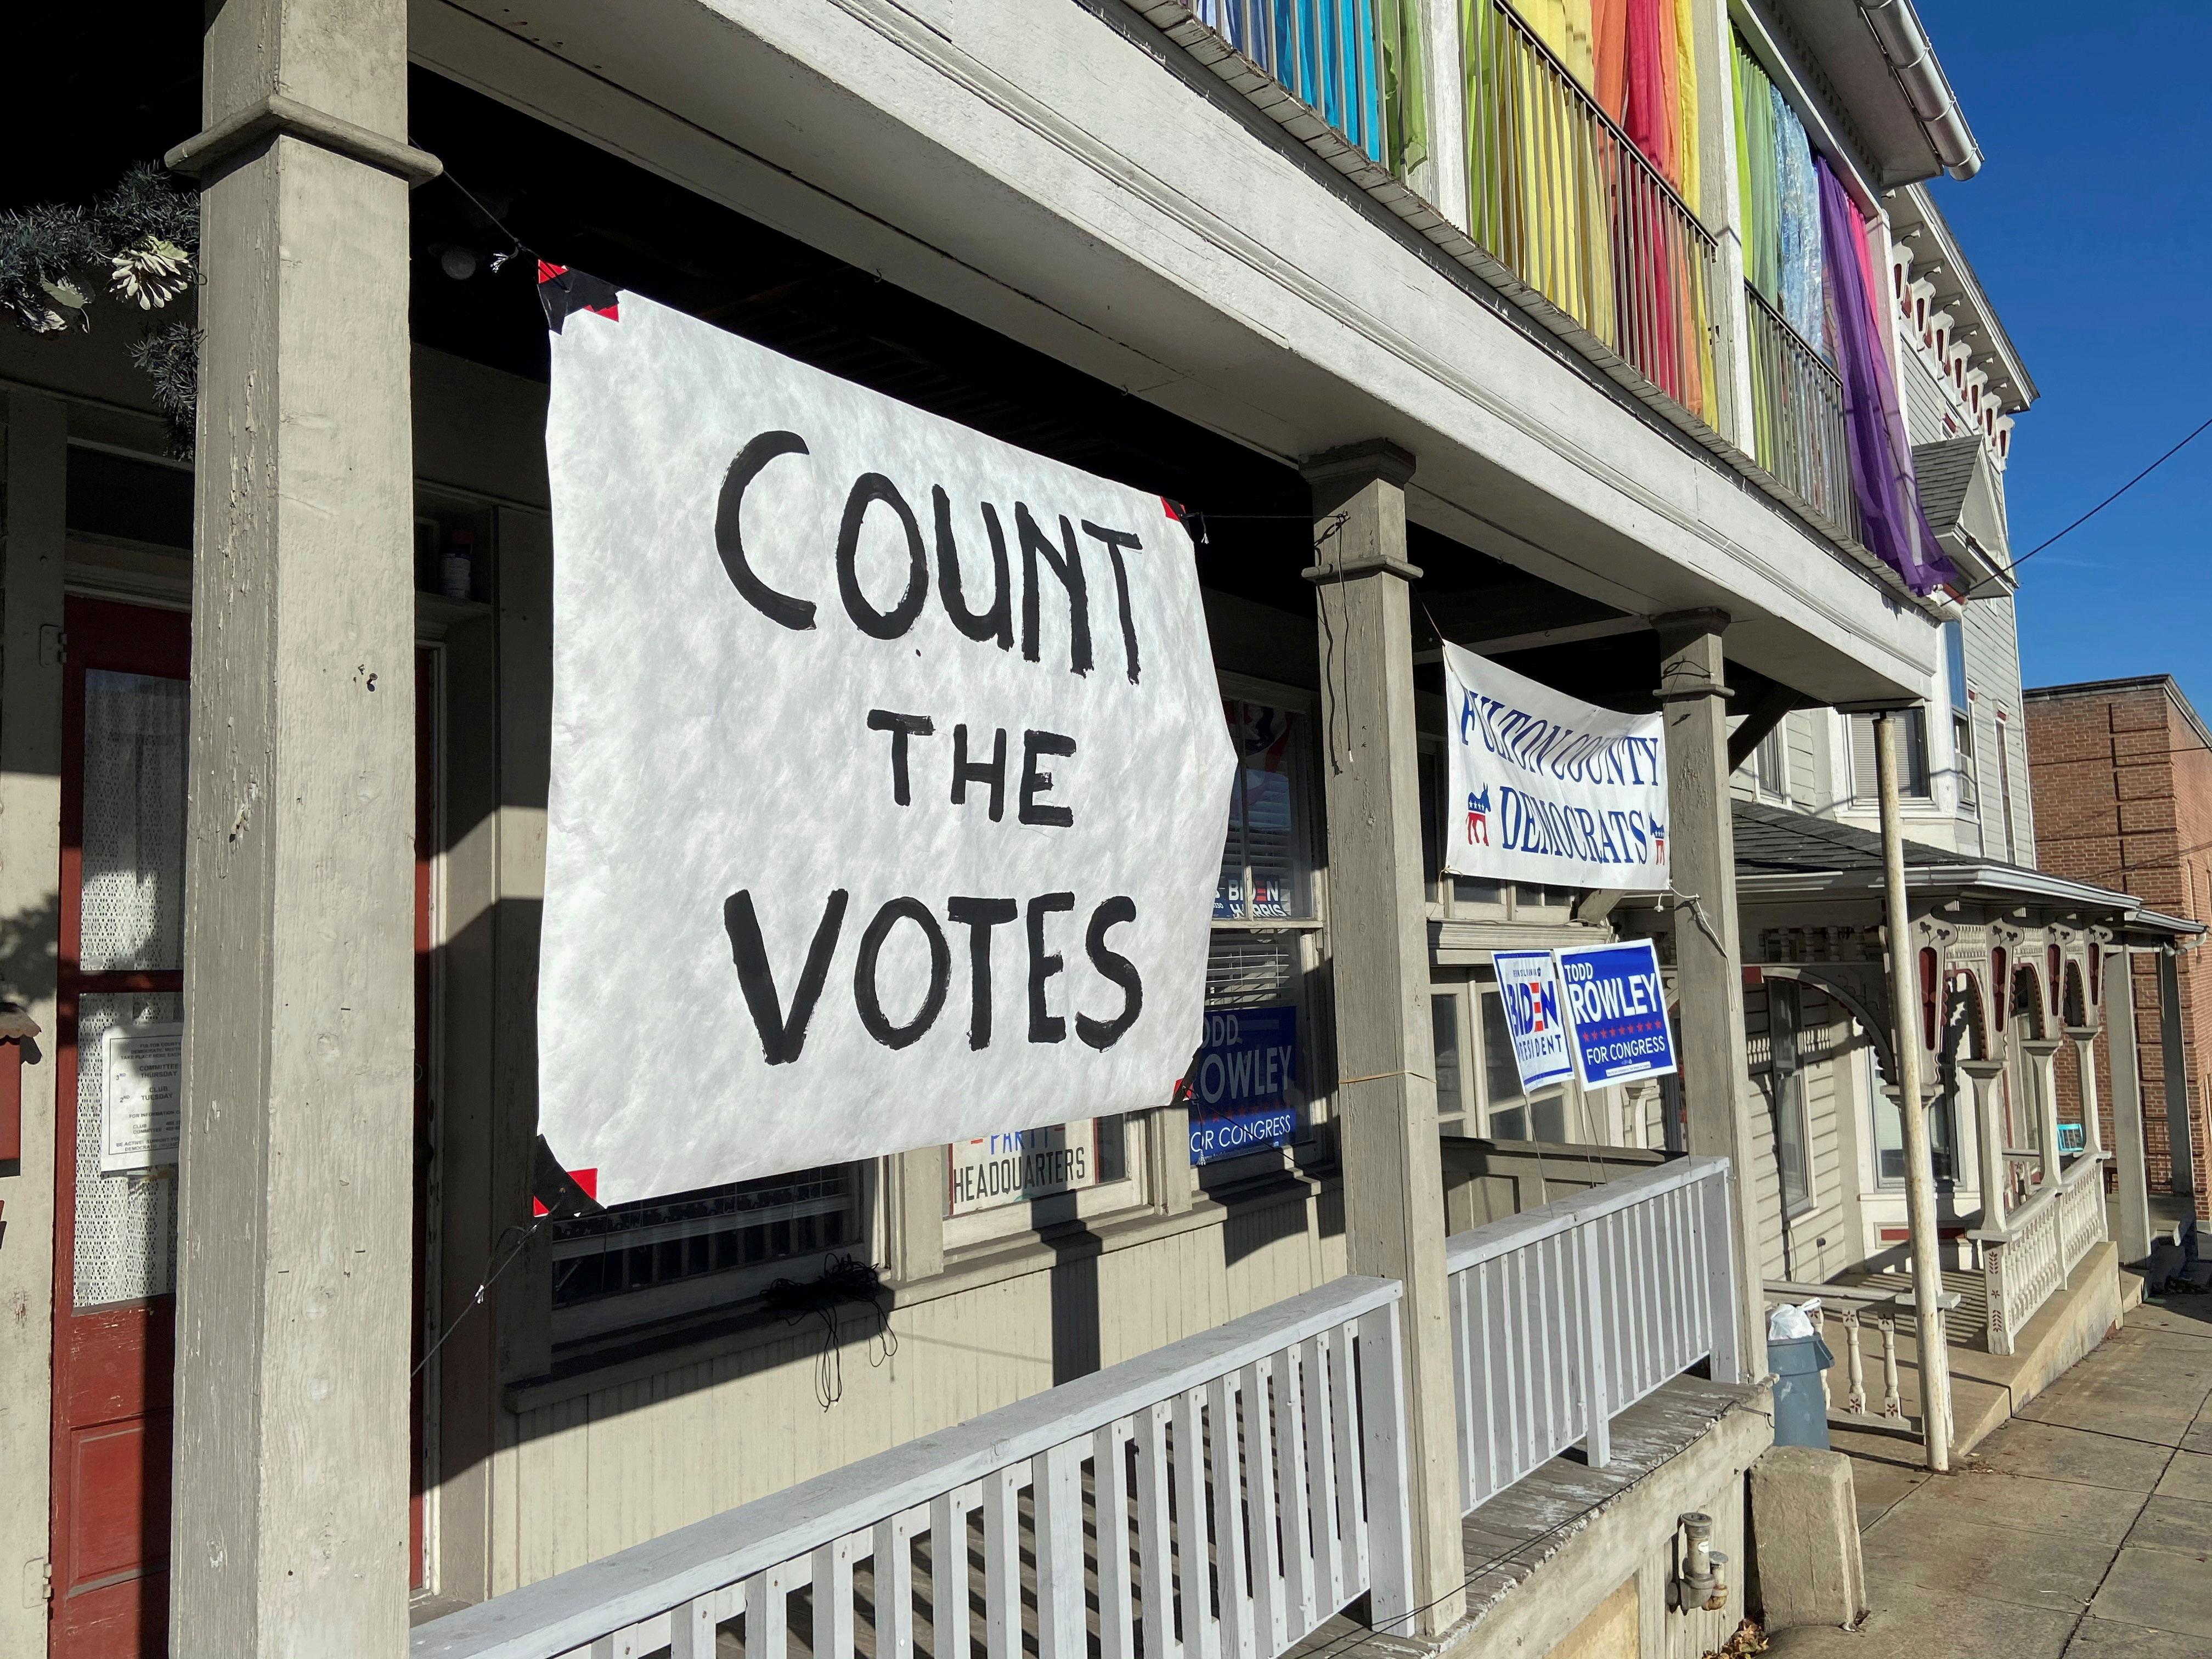 A sign urging people to vote is seen on the porch of the Democratic Party's Fulton County headquarters on Election Day in McConnellsburg, Pennsylvania November 3, 2020. REUTERS/Nathan Layne/File Photo